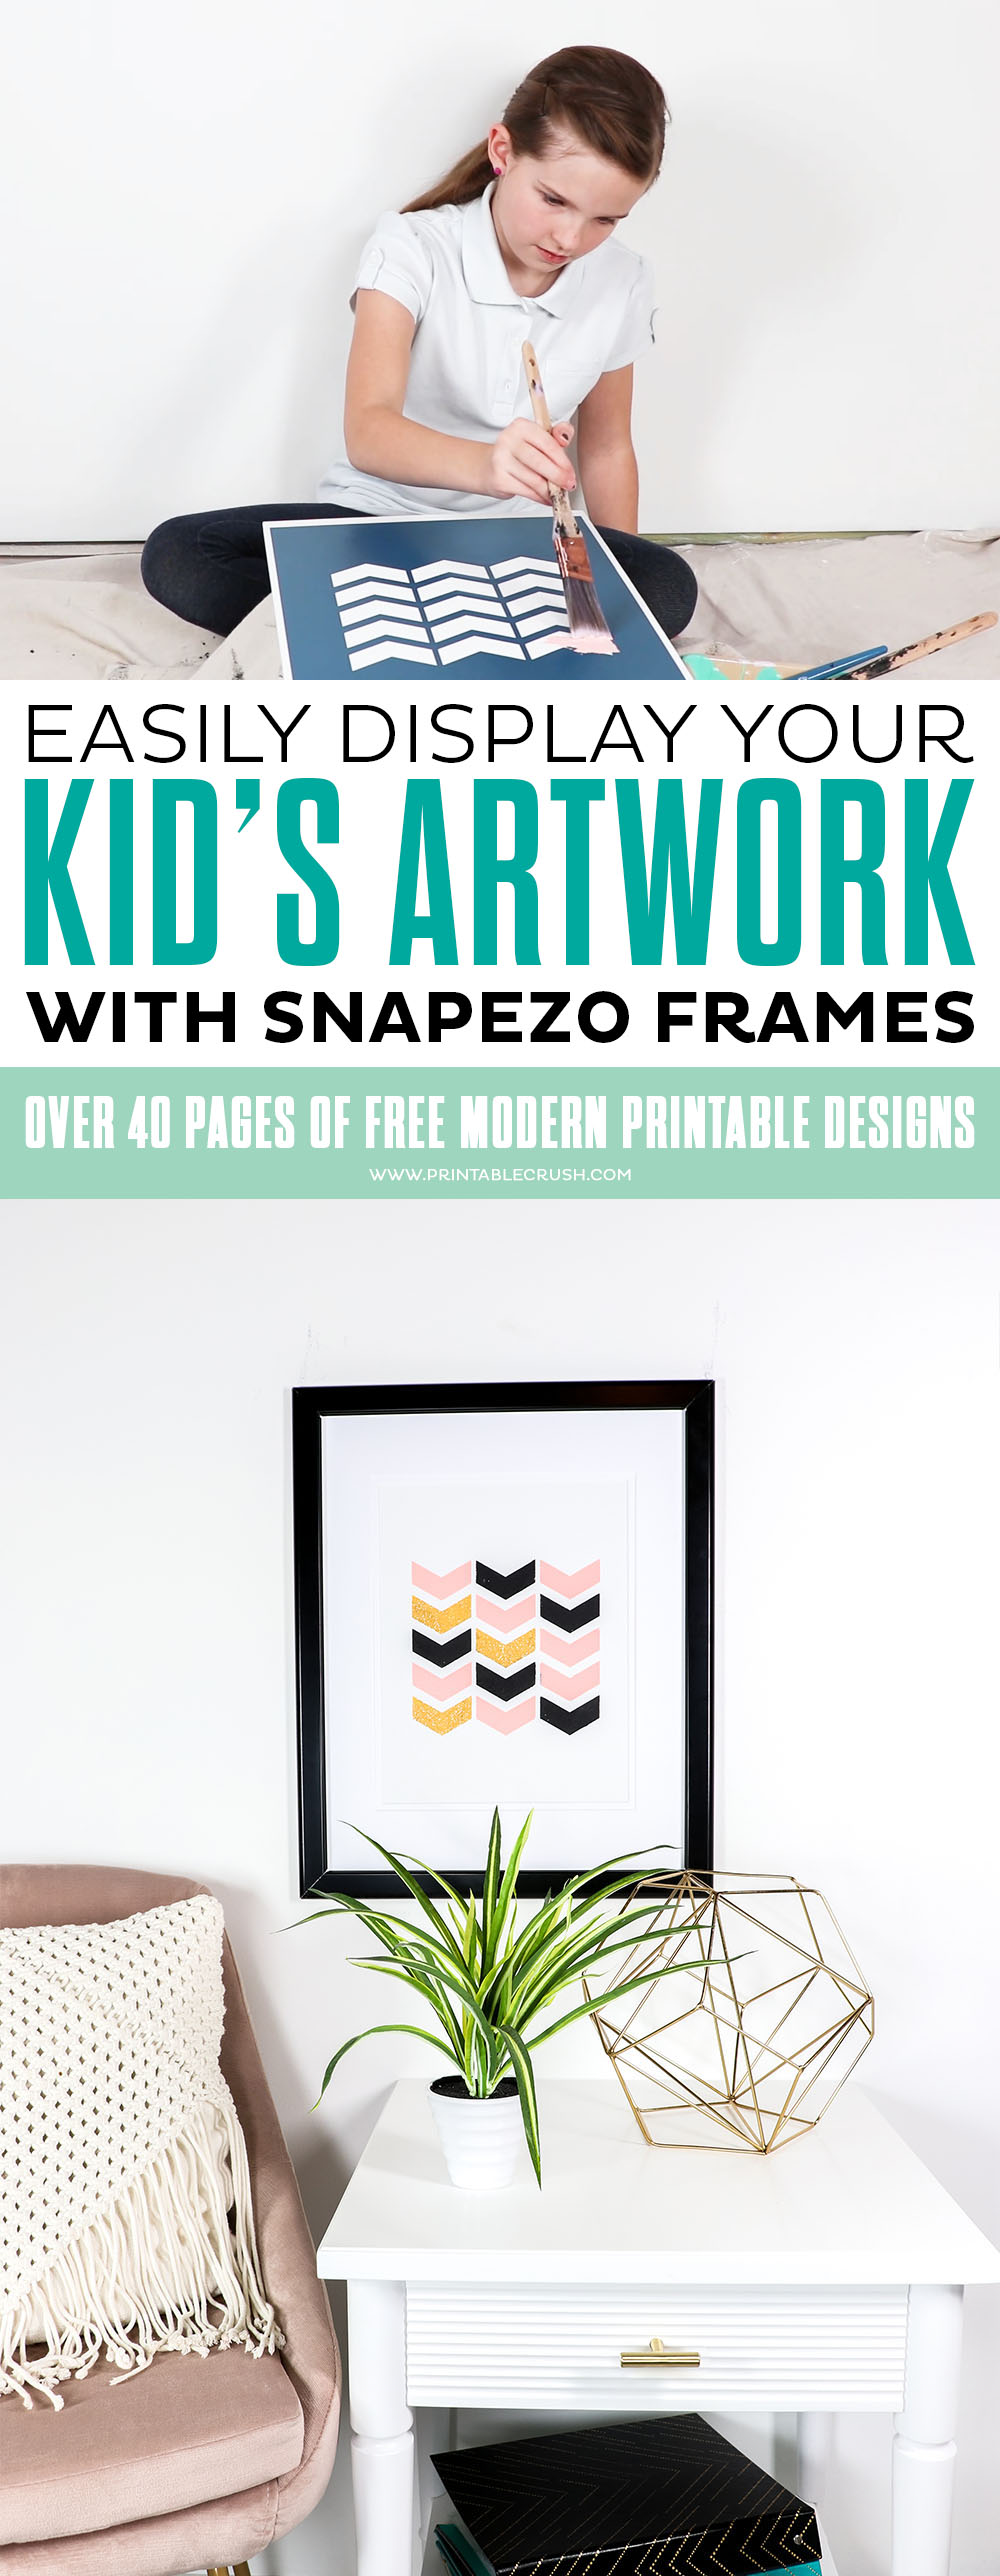 Display your kids artwork with snapezo frames - I'll tell you how to go from canvas to creation to artwork in this super fun tutorial!